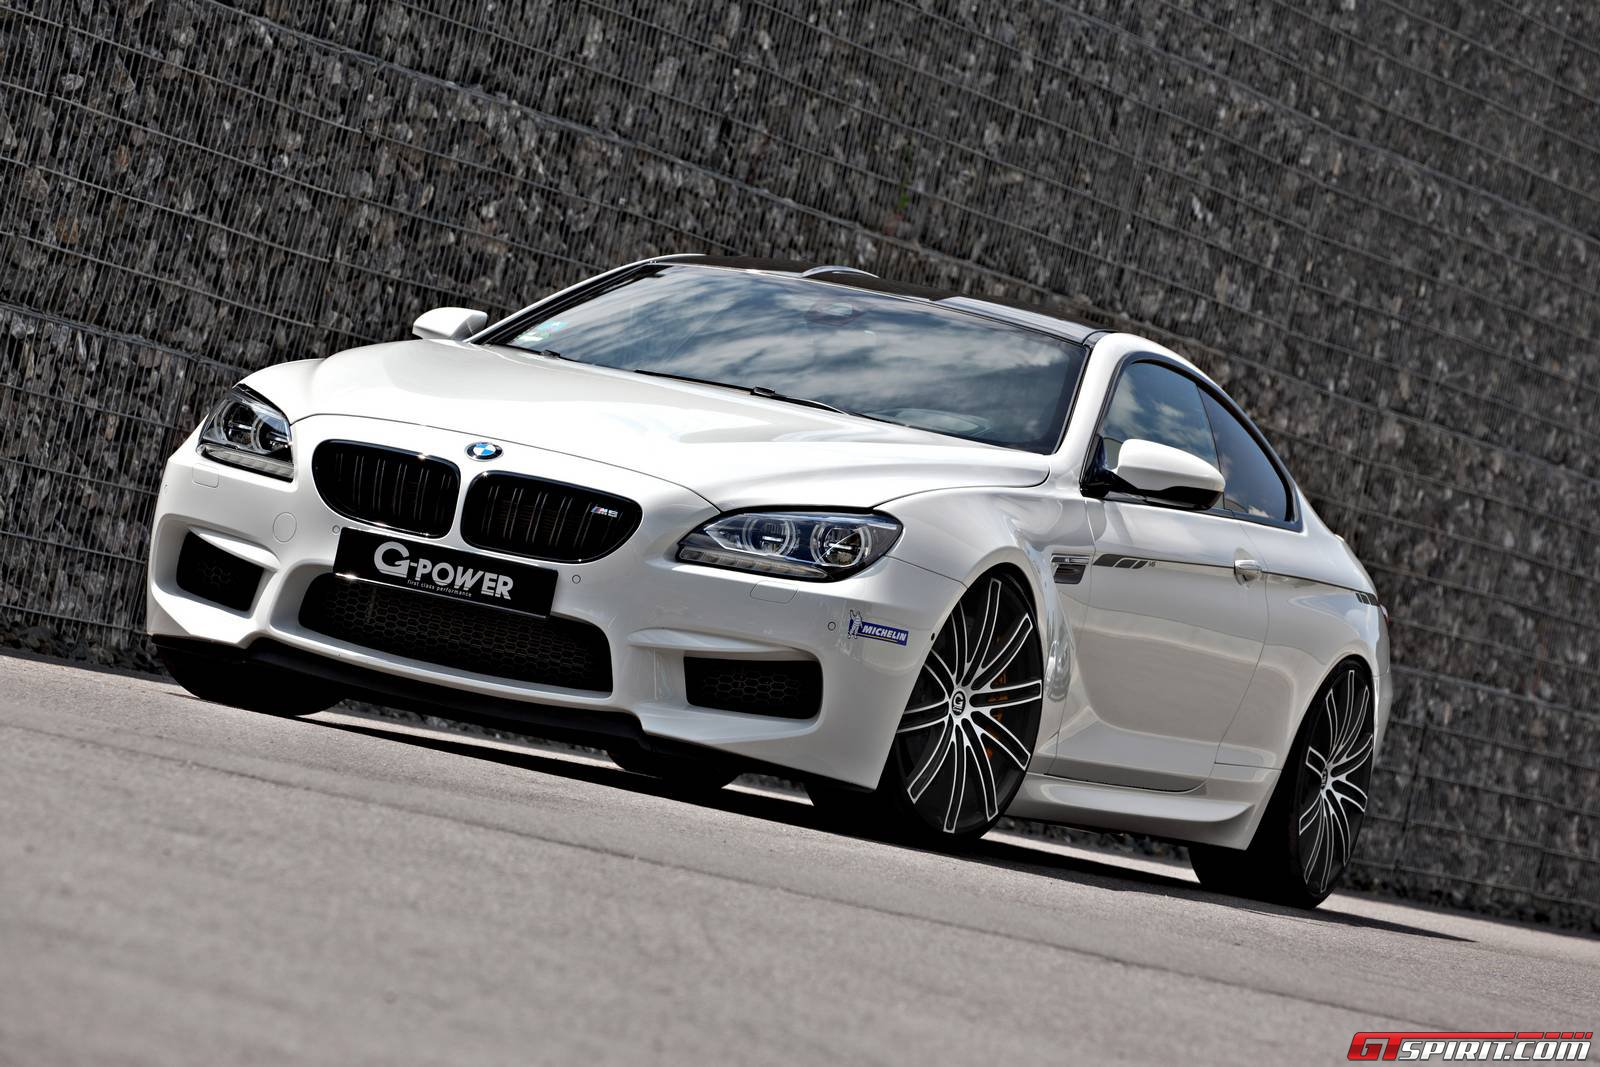 official 710hp g power bmw m6 bi tronik iii v2 gtspirit. Black Bedroom Furniture Sets. Home Design Ideas